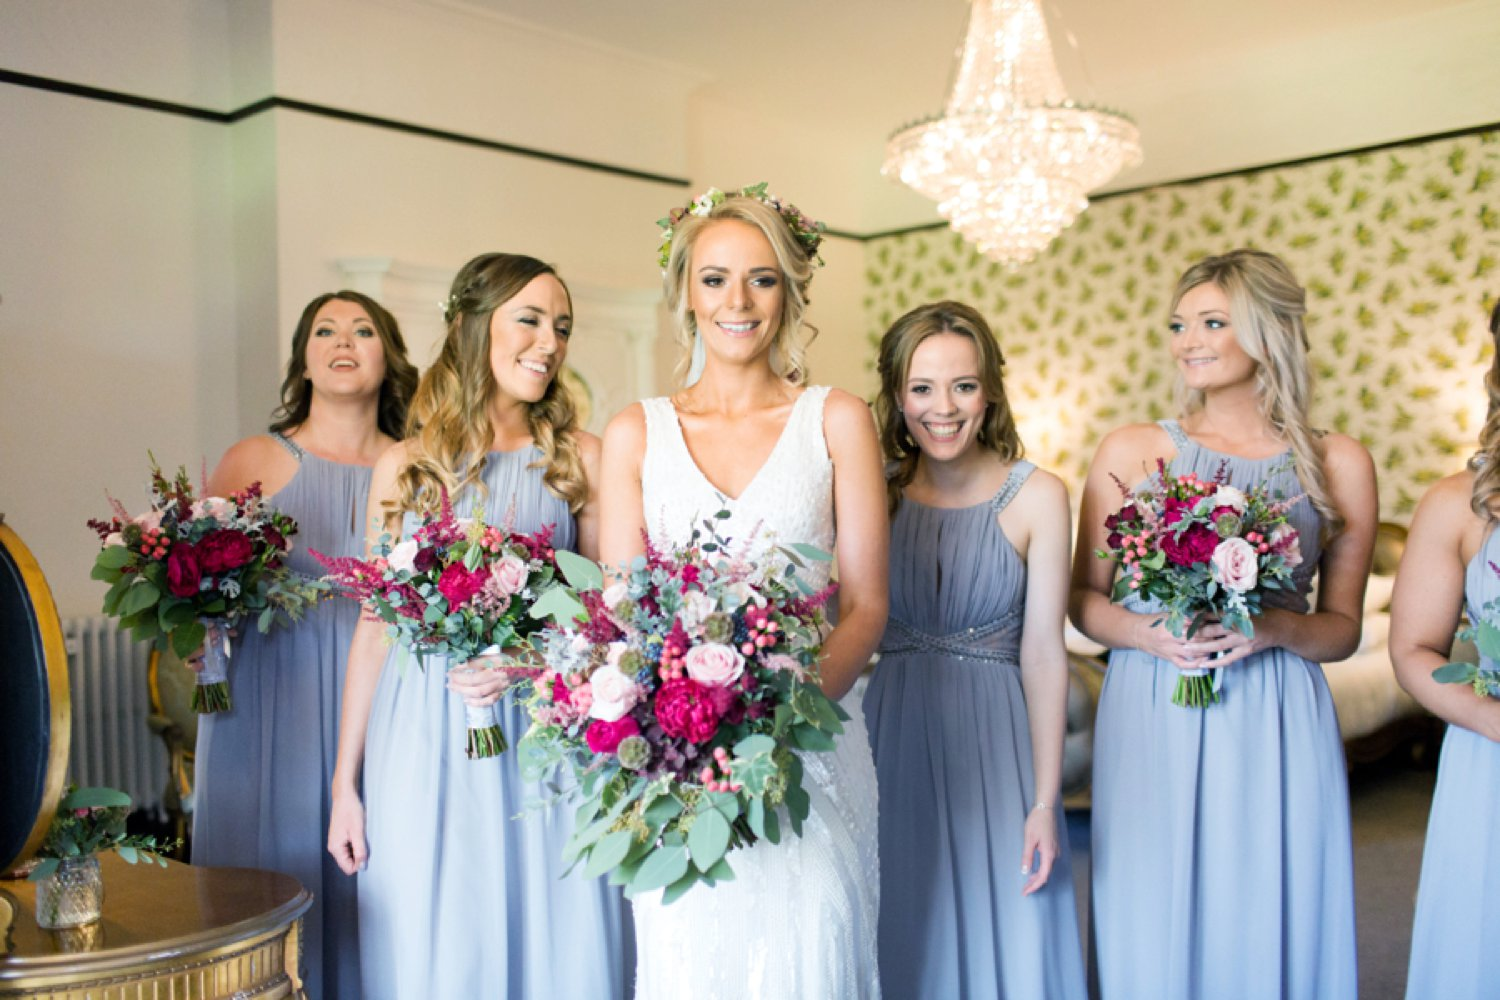 beautiful bride and bridesmaids flowers